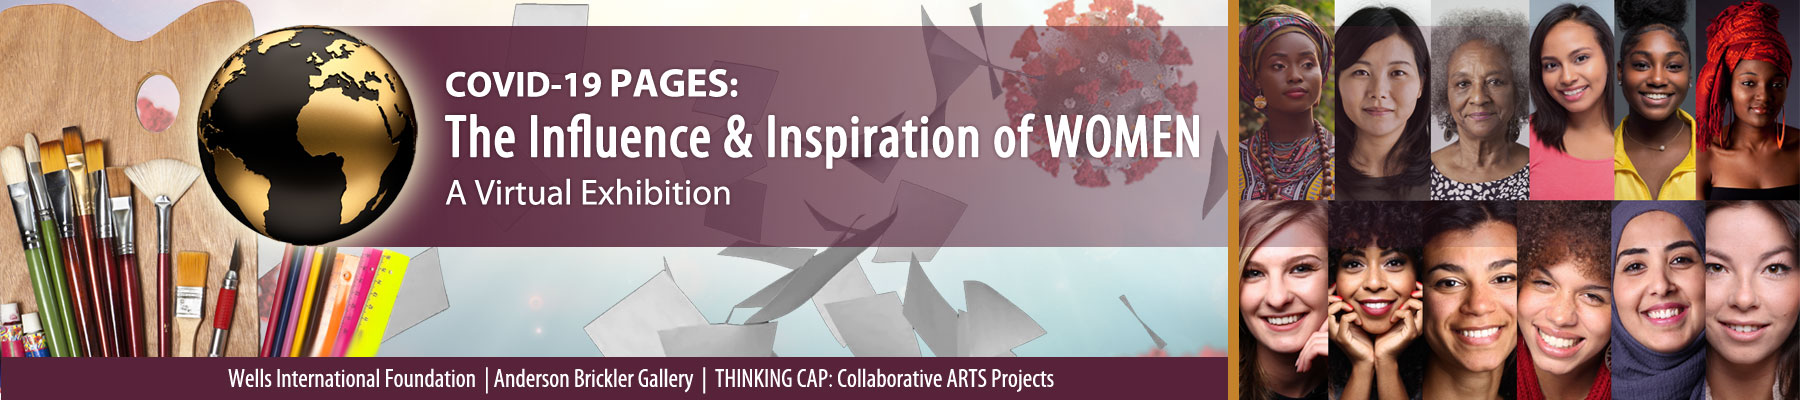 COVID-19 PAGES: The Influence & Inspiration of Women